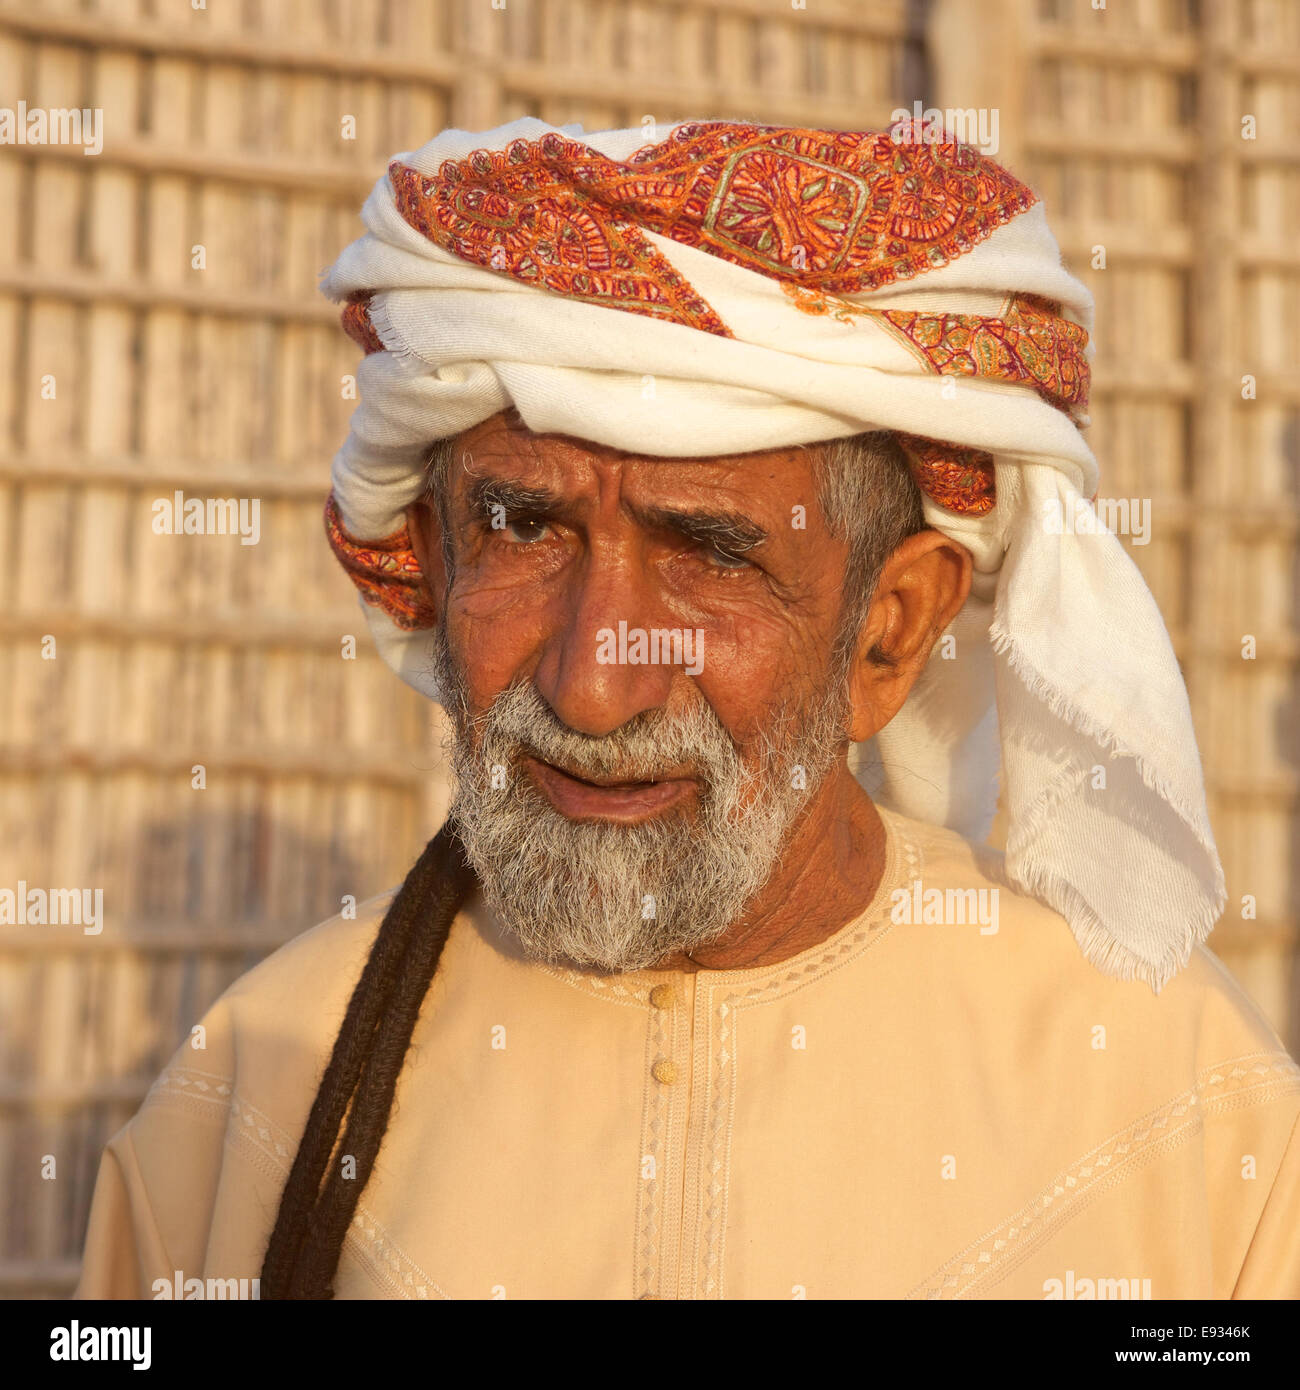 Portrait of an elderly Omani man wearing a traditional headcloth near Muscat in the Sultanate of Oman. Stock Photo